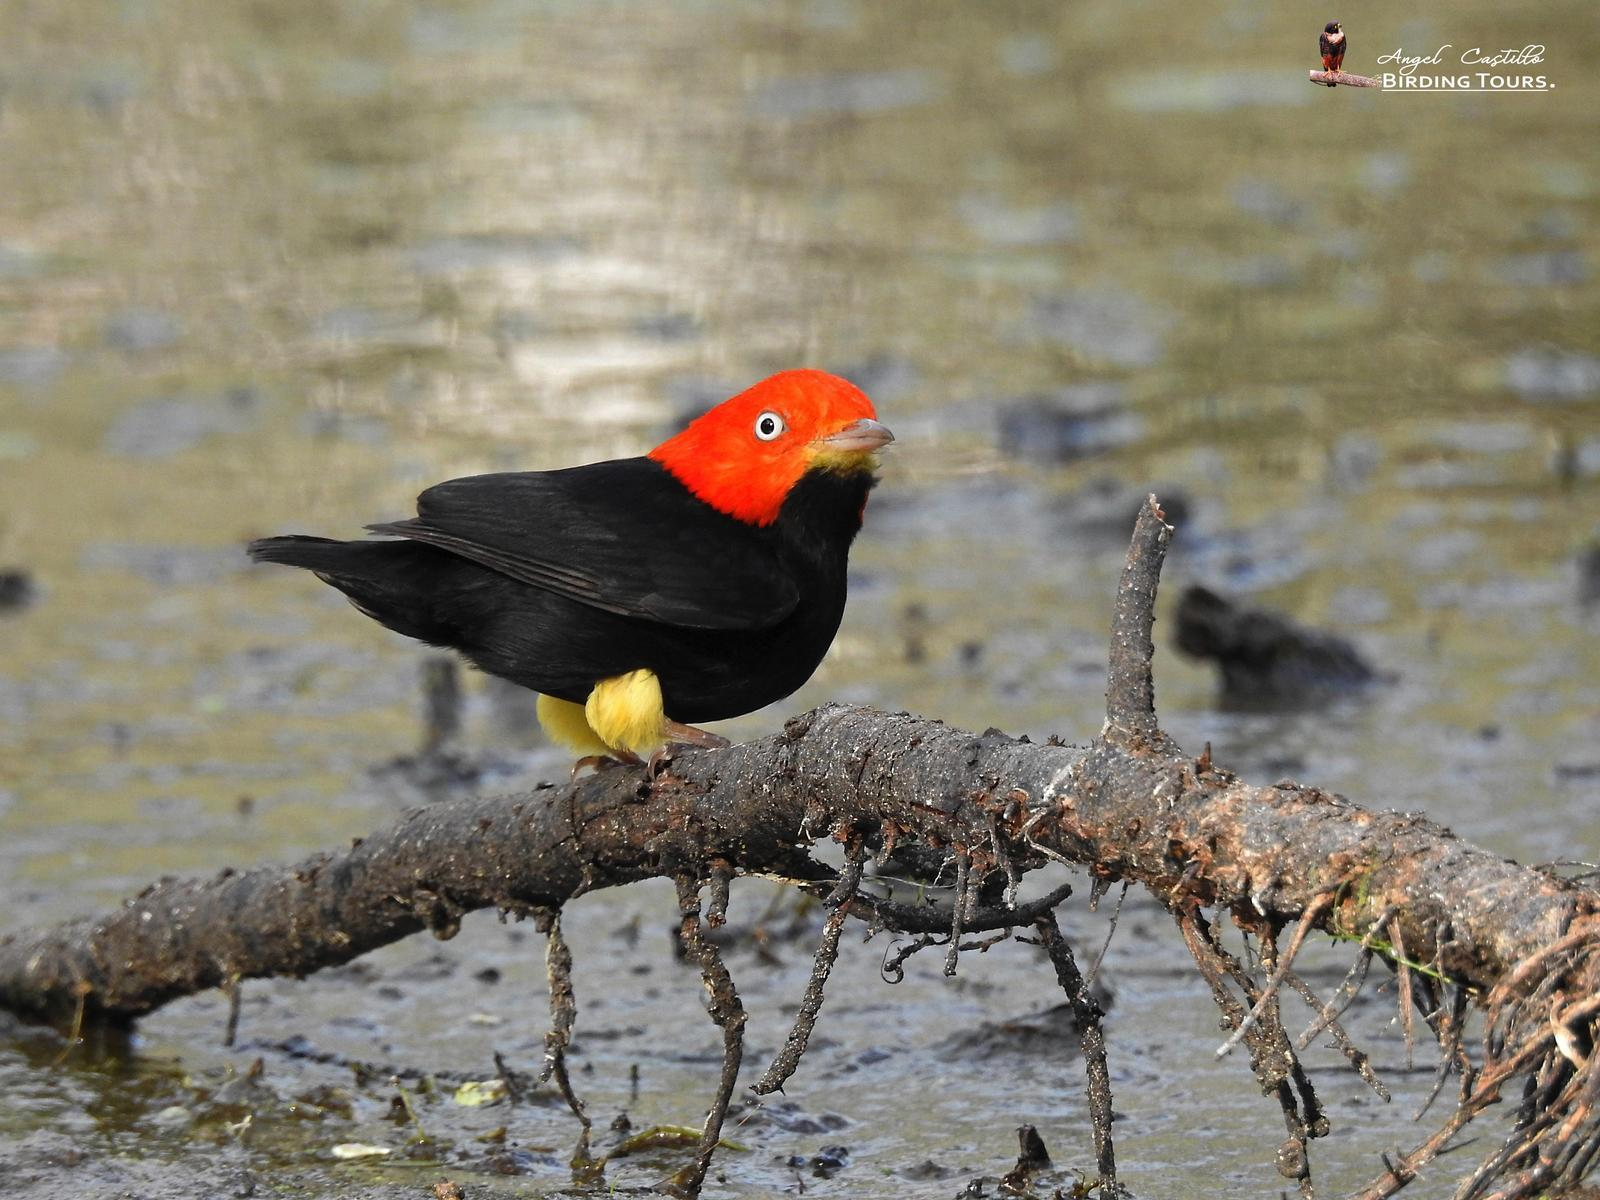 Red-capped Manakin Photo by Castillo Cime